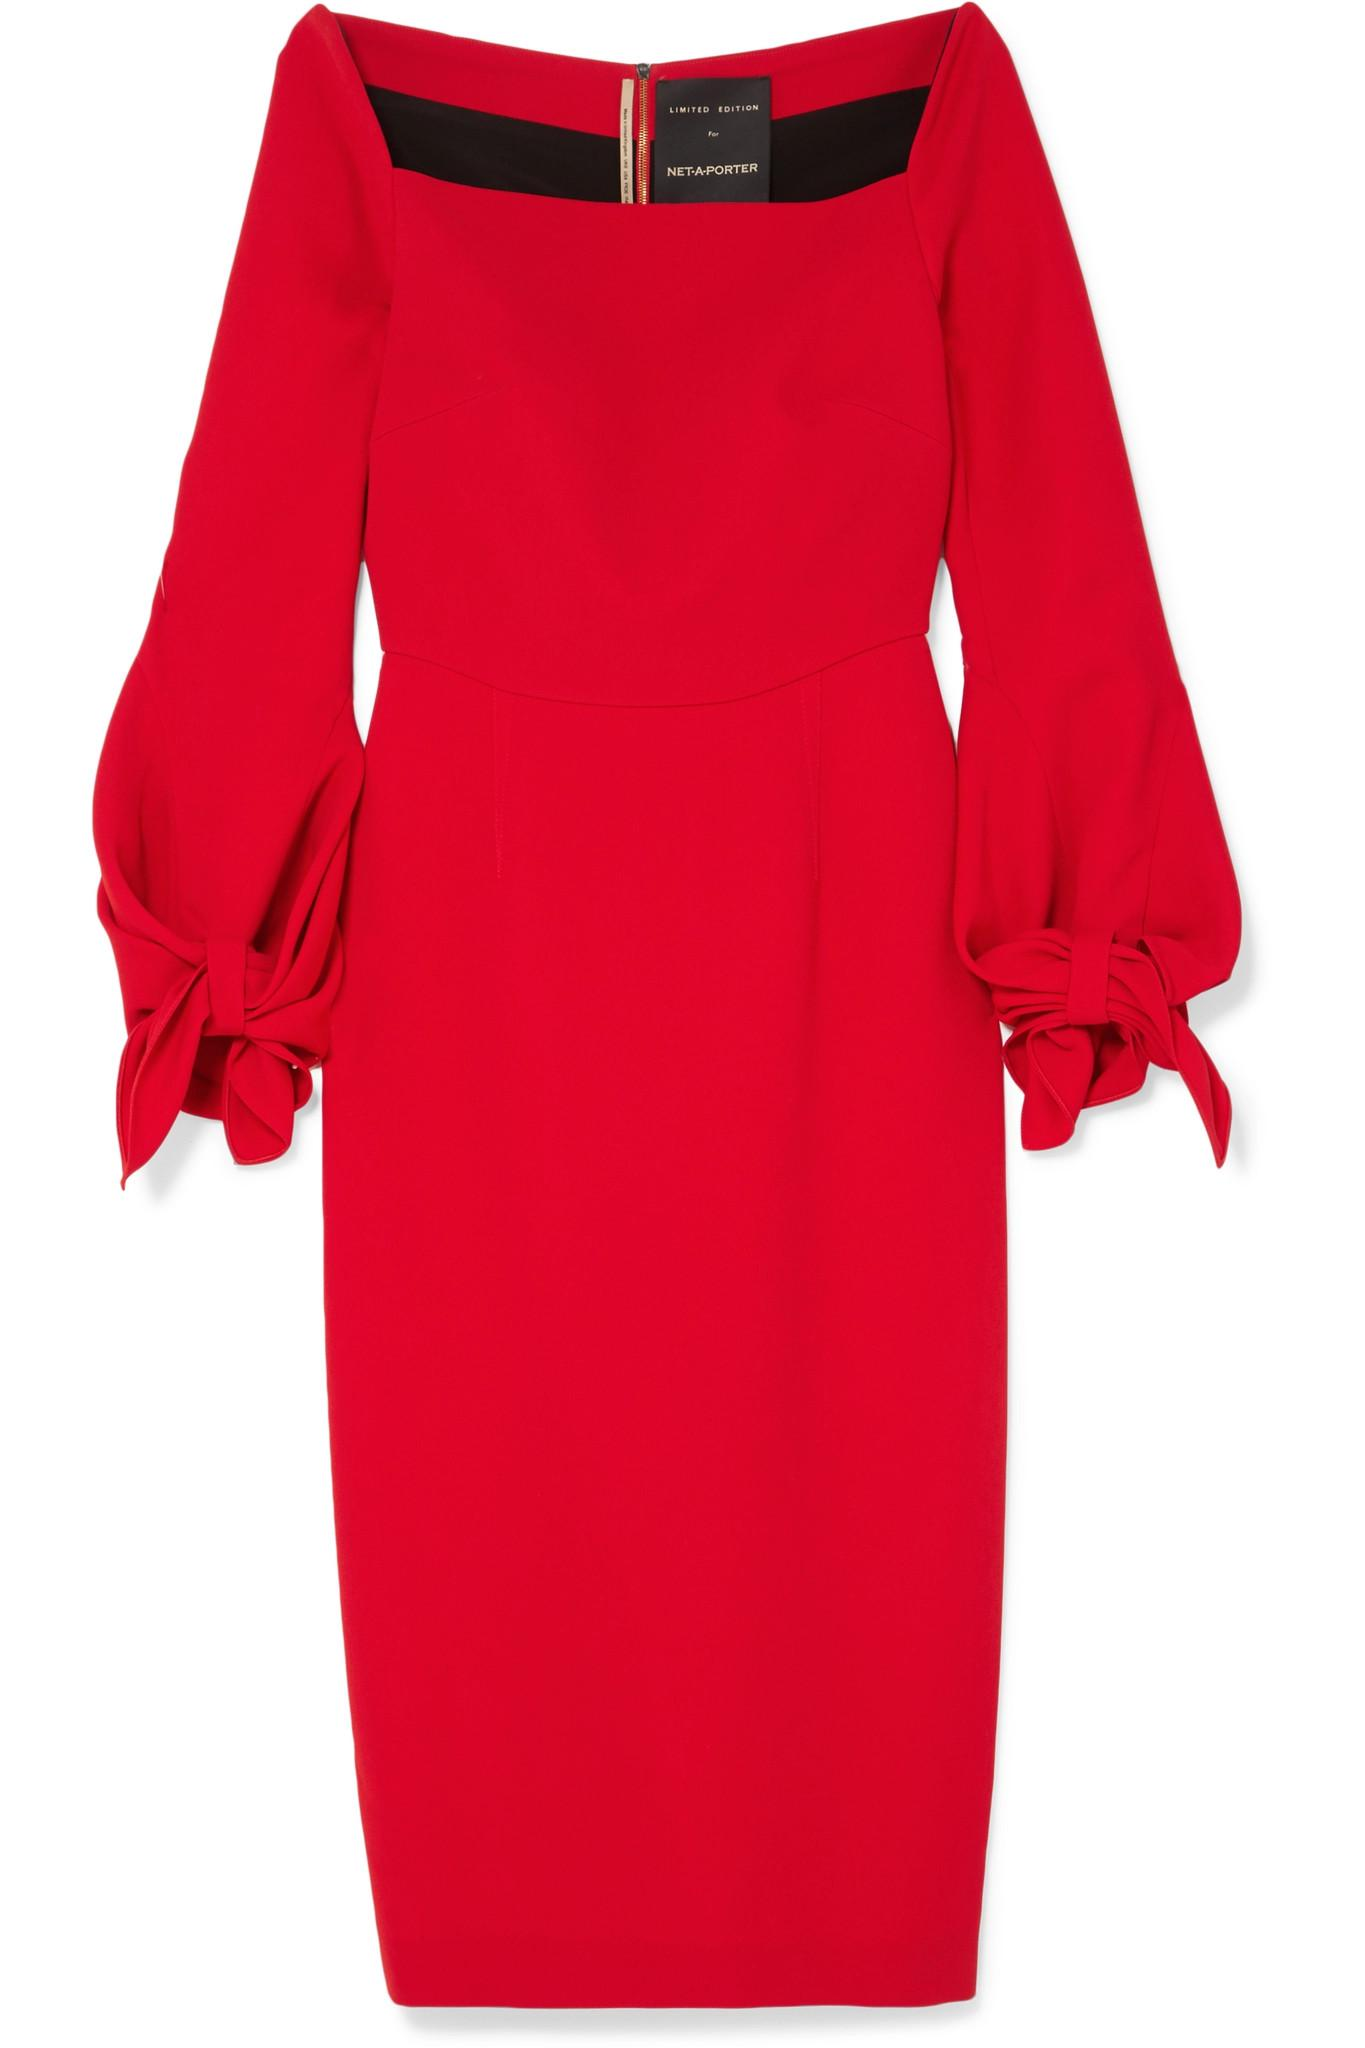 Mapplewell Bow-detailed Crepe Dress - Red Roland Mouret Newest Cheap Online New Lower Prices Nmq35M0